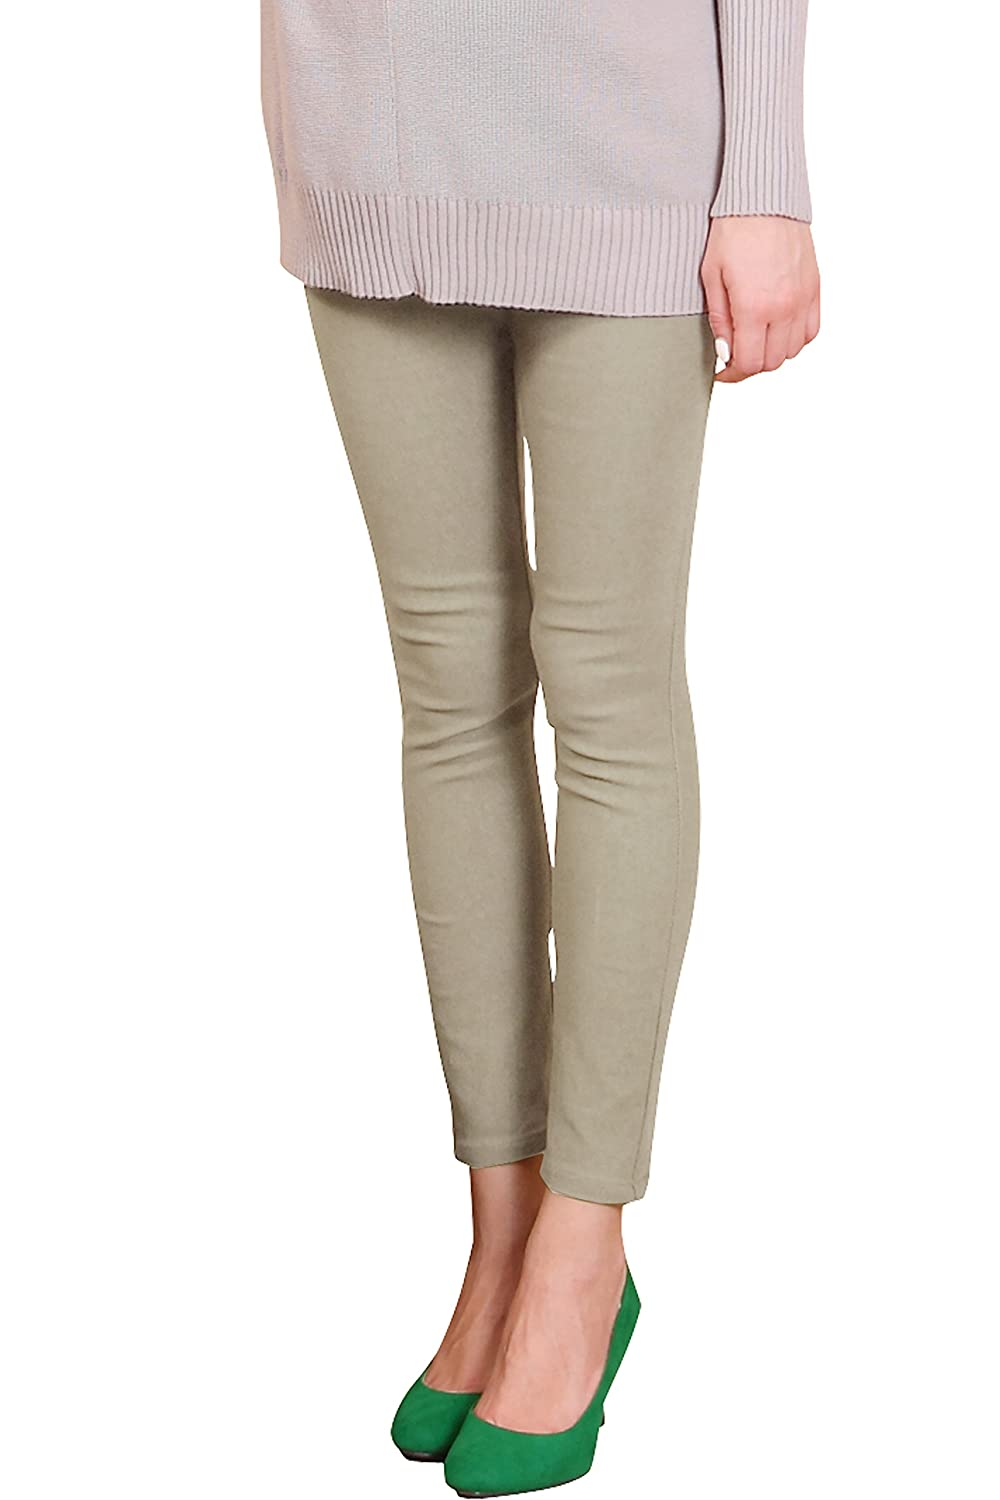 Sweet Mommy Raised Stretchy Maternity Skinny Pants sp4084